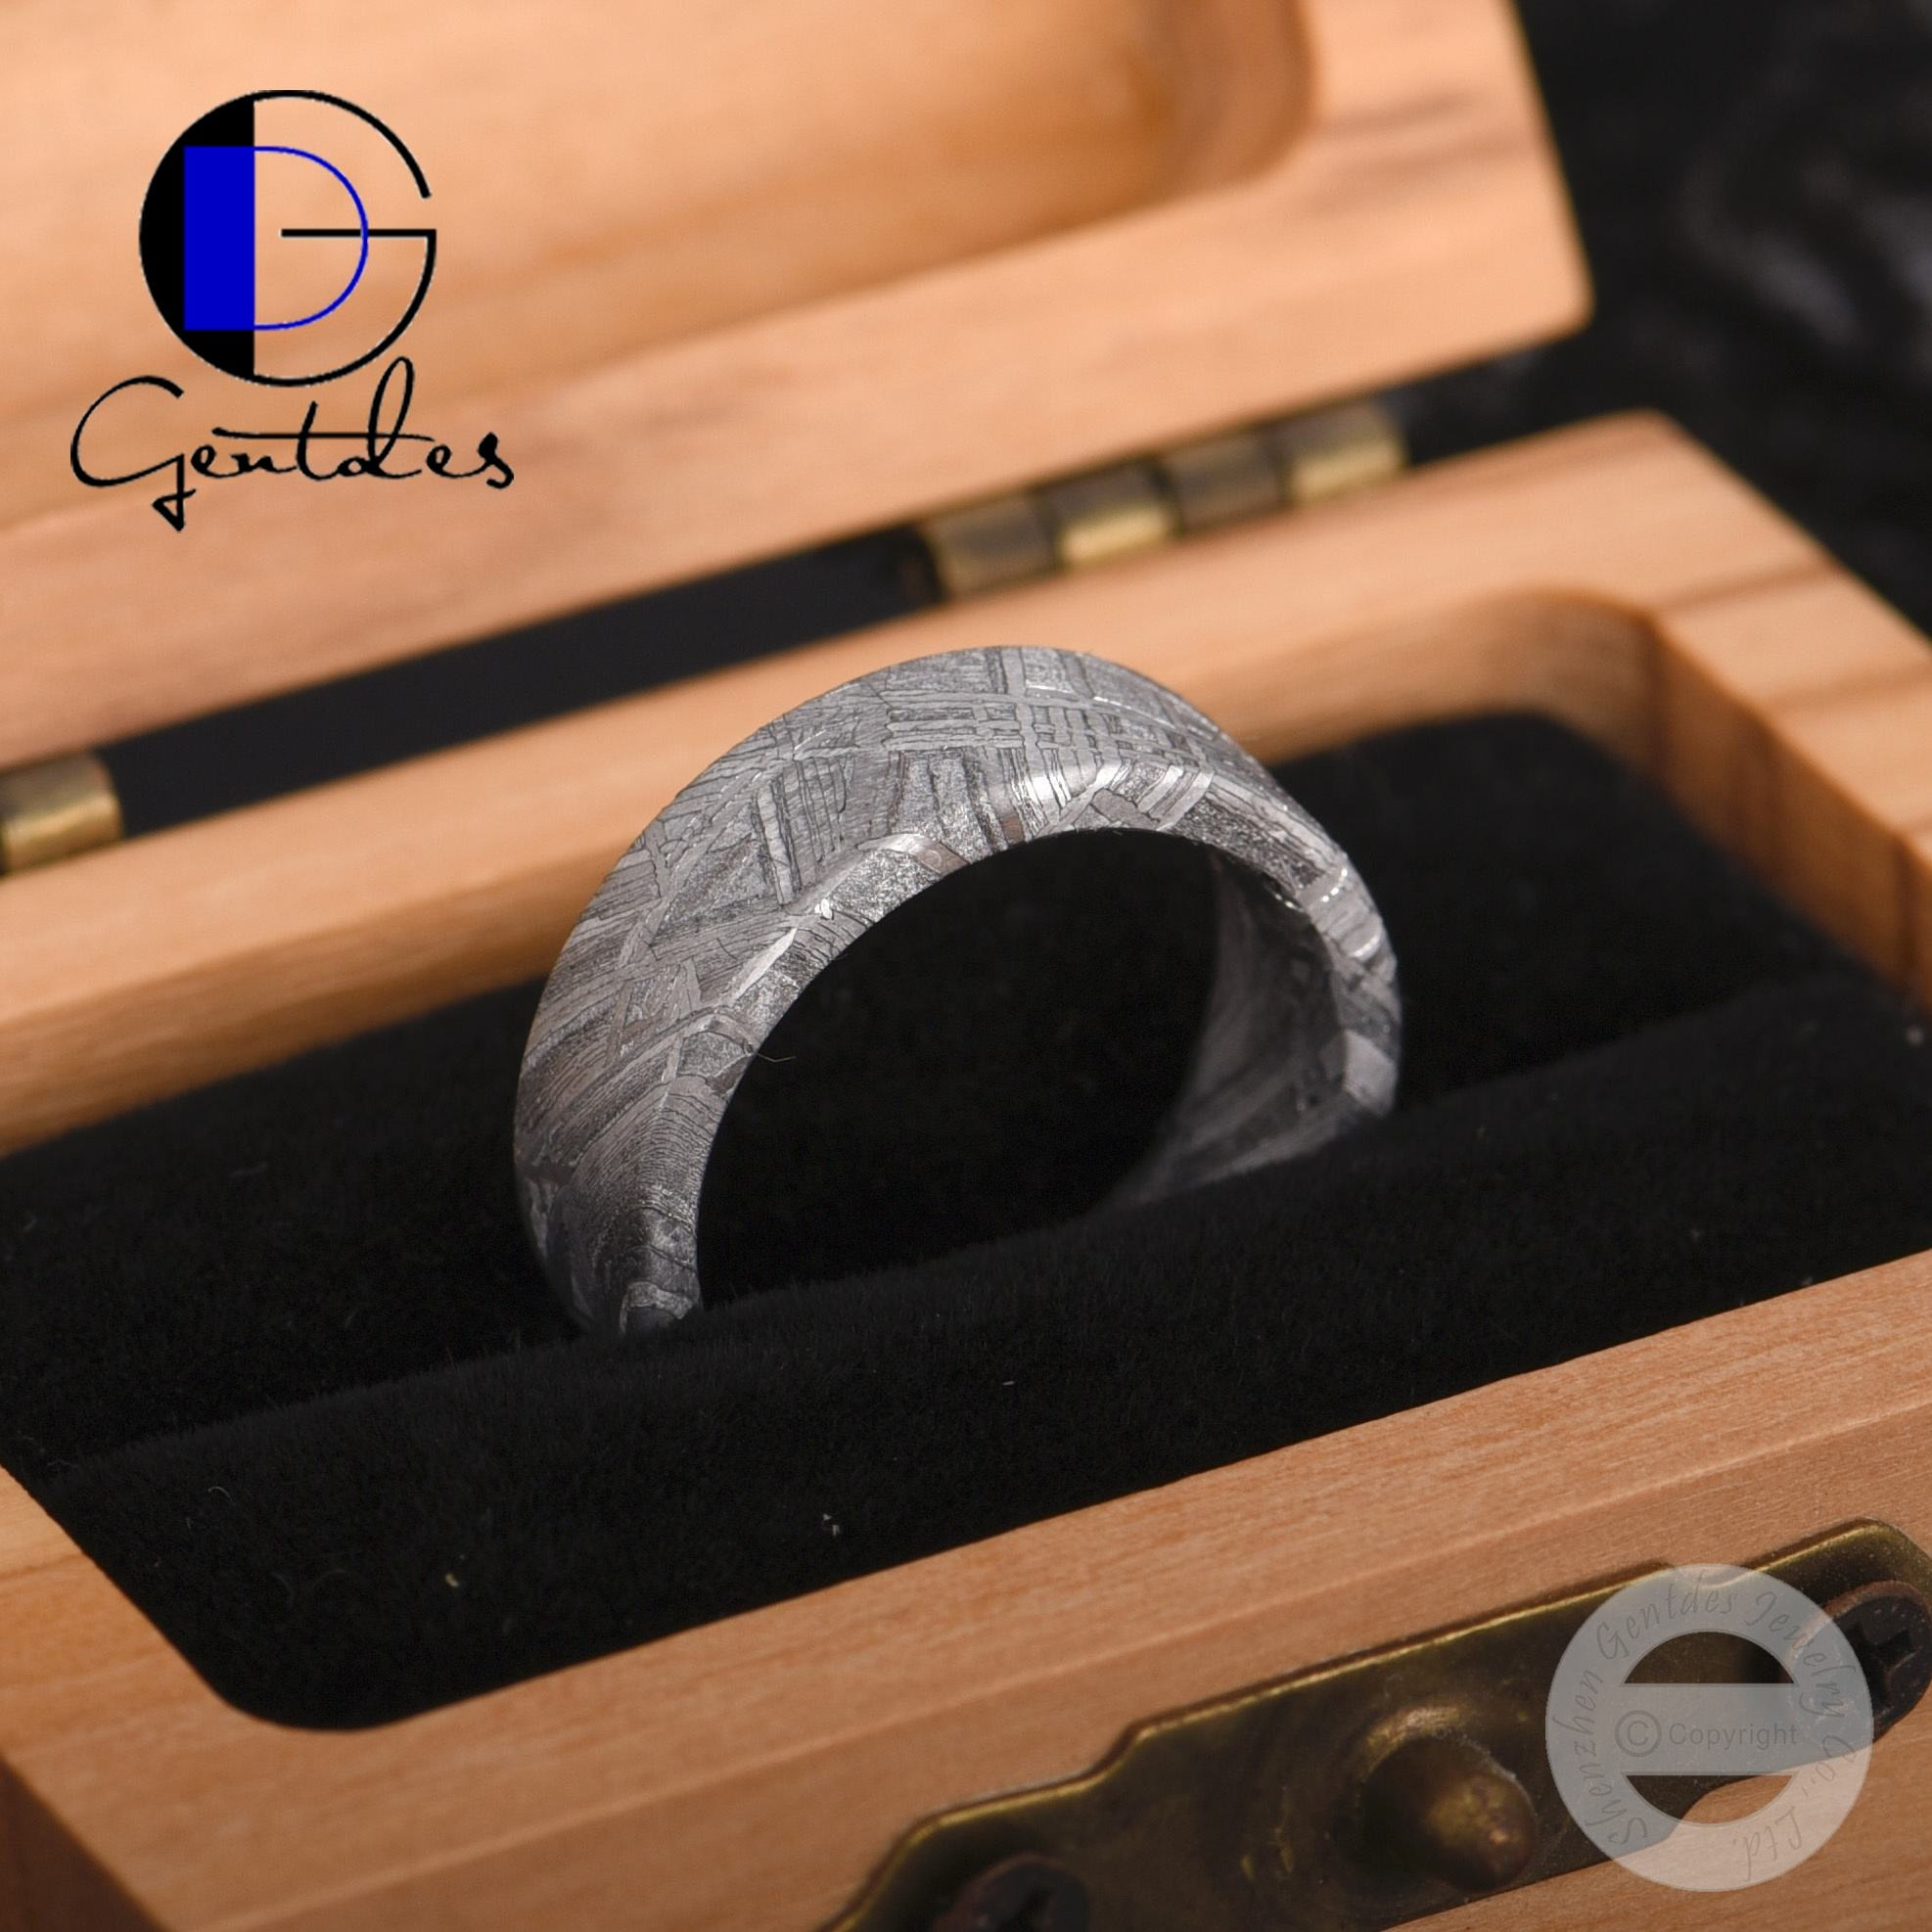 Gentdes Sieraden Hot Selling <span class=keywords><strong>Mannen</strong></span> Wedding Bands Real Meteoriet Ring